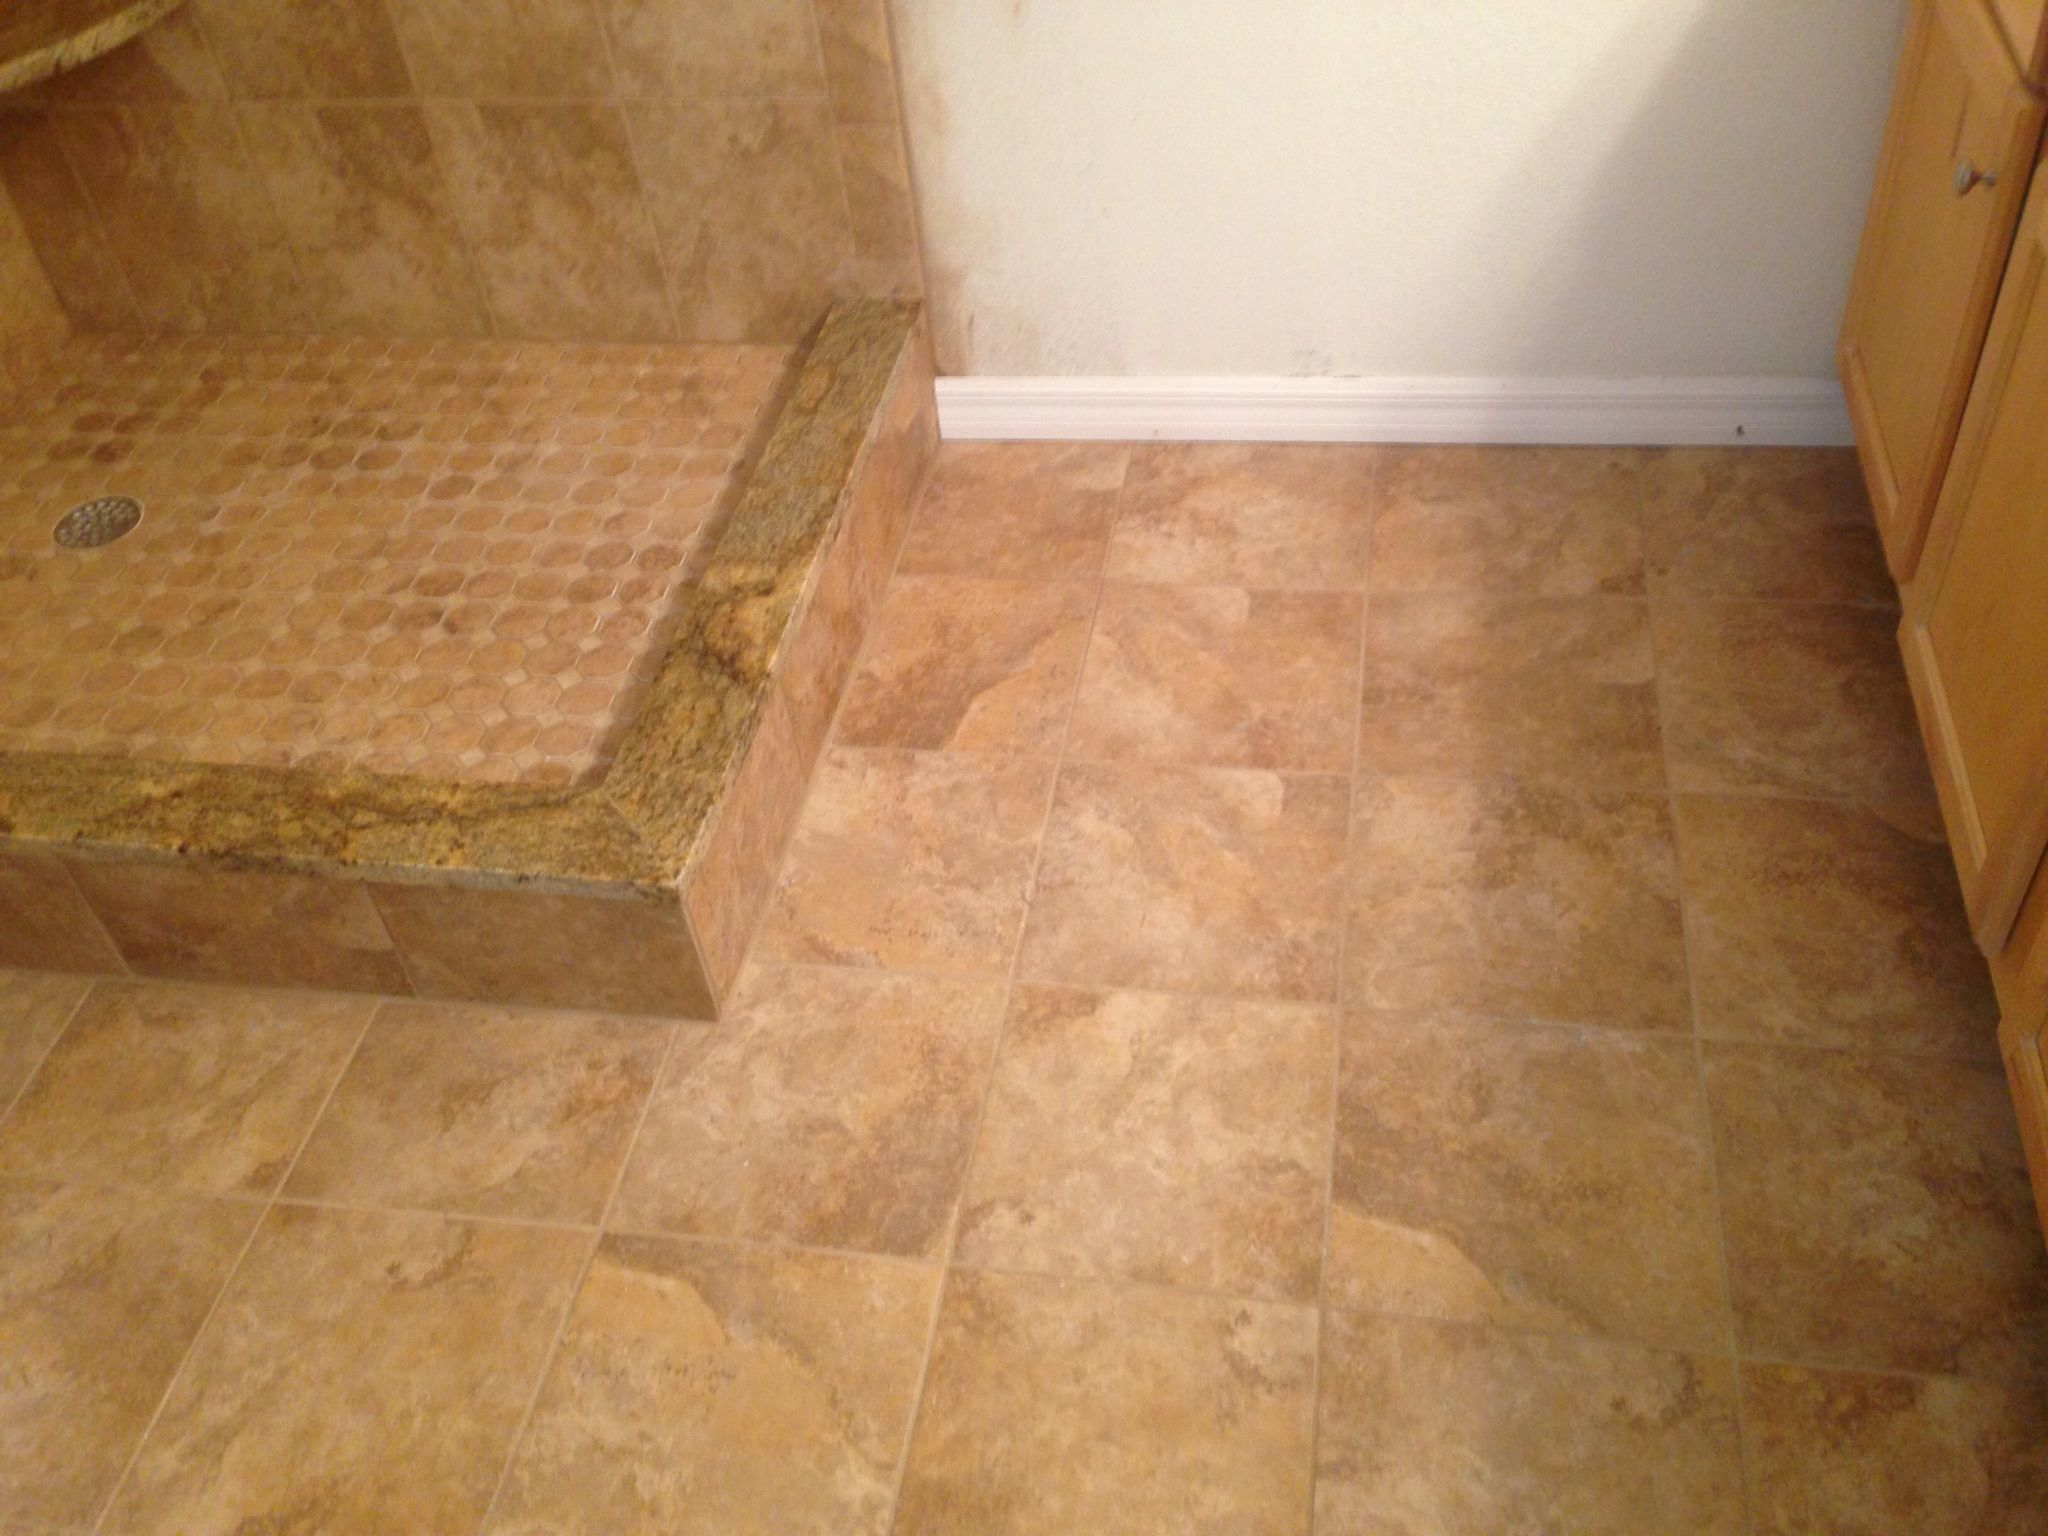 Bathroom Remodel Fort Myers north fort myers bathroom remodel - olde florida contracting, inc.